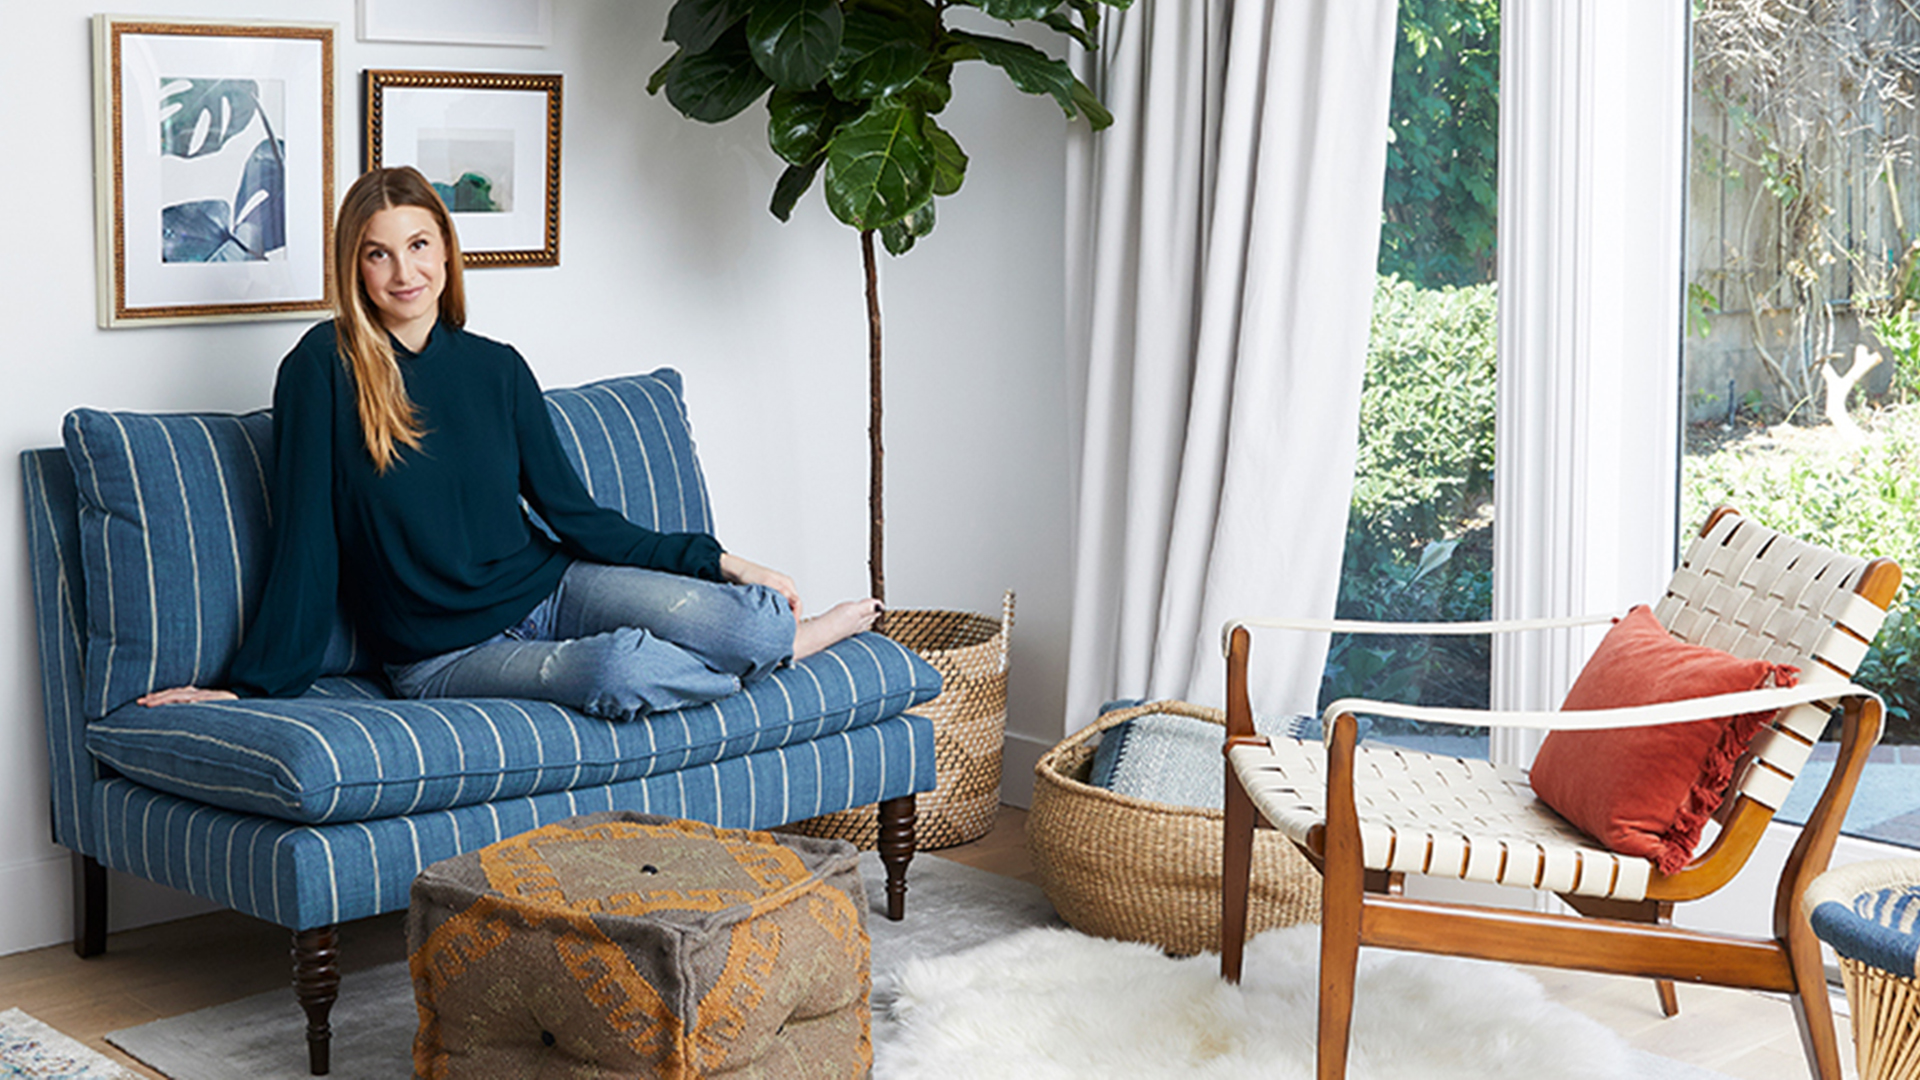 Whitney Port's Home Decor Style: Shop The Look At Joss